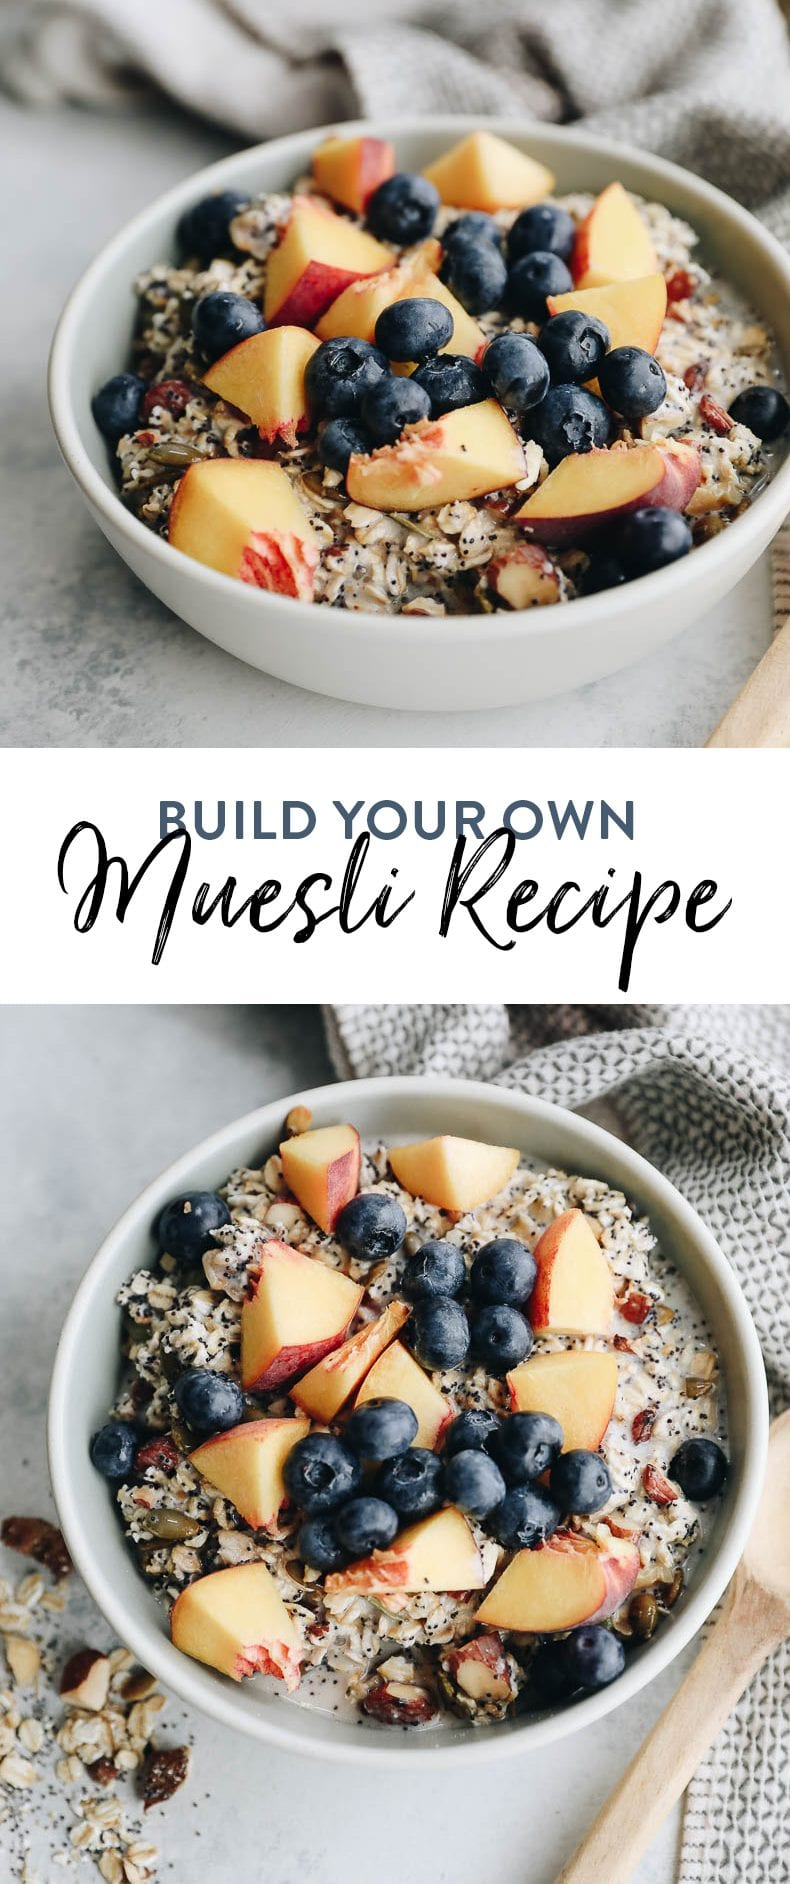 A healthy breakfast alternative made from scratch! You can easily customize this healthy make your own muesli recipe to suit your needs and wants #muesli